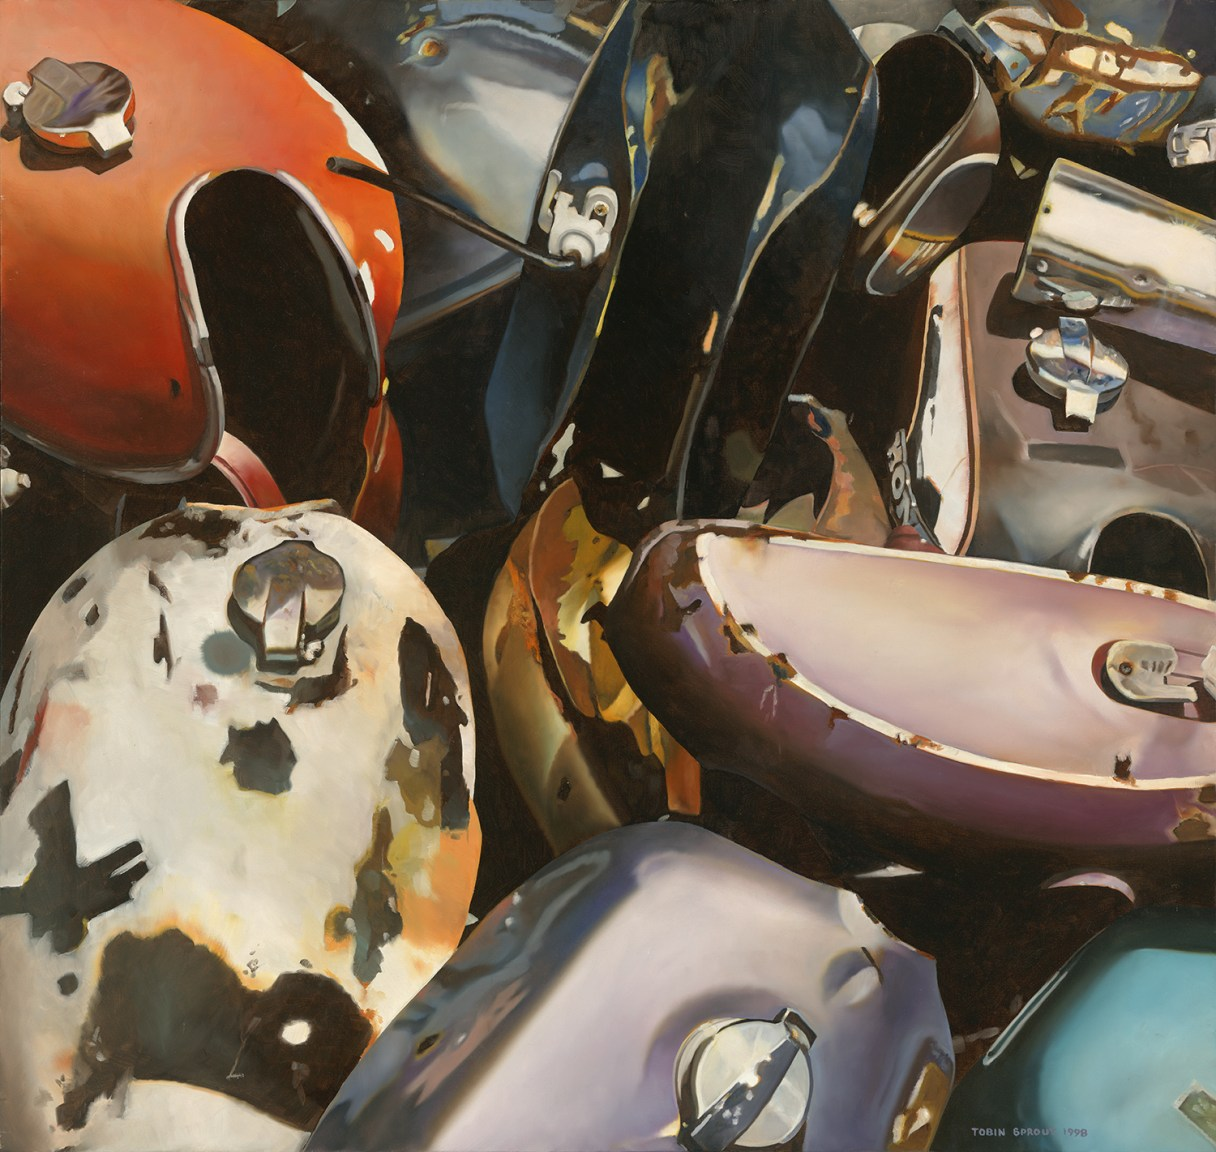 Gas Tanks, 1998, Tobin Sprout, American b. 1955, 38 x 36 inches, oil on canvas, $9500 The play of realism and abstract in this portrait of industrial design weathered by the elements is an impressive achievement. One of the last of the series available and a very impressive work by Sprout.